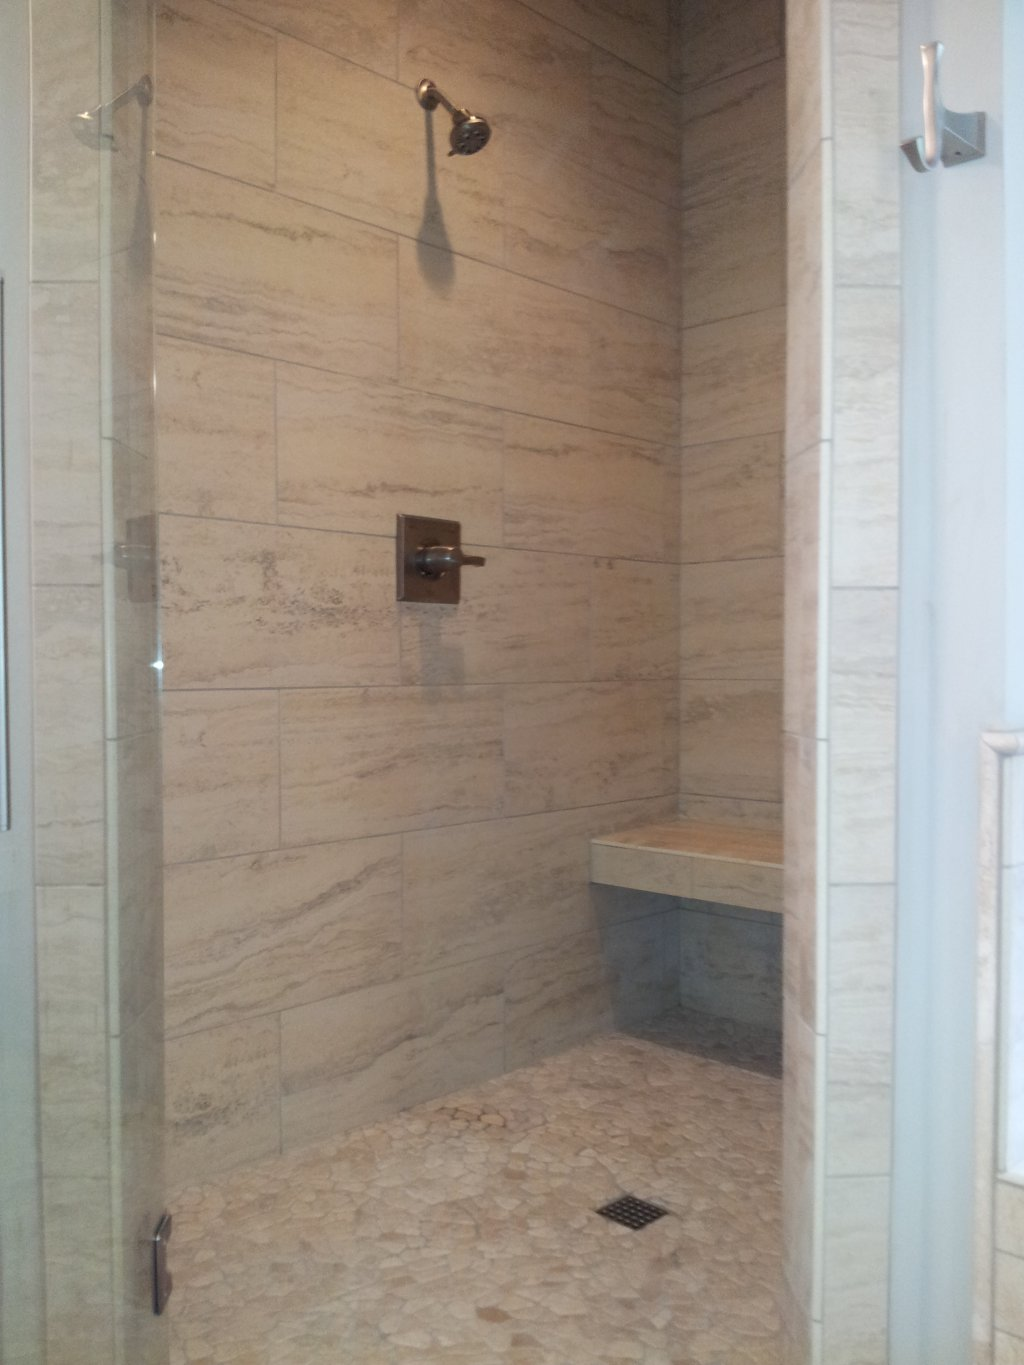 Chattanooga tile installation repair complete flooring service custom tile shower installation dailygadgetfo Gallery